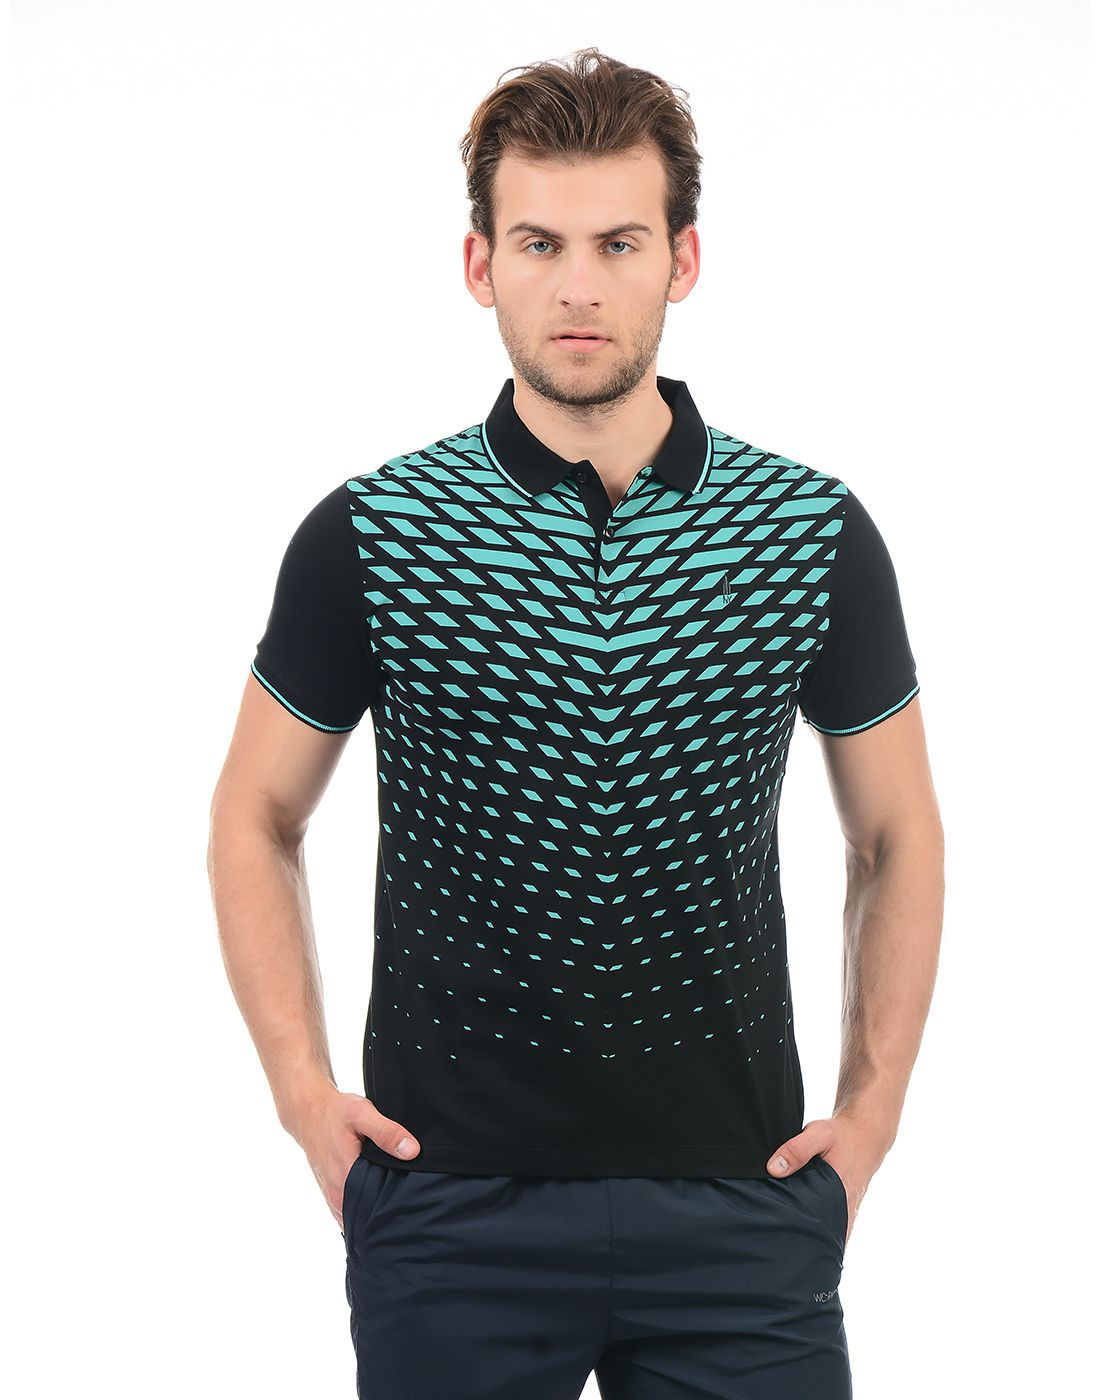 e3b89948 Arrow New York Black Regular Fit Polo T Shirt - Buy Arrow New York Black  Regular Fit Polo T Shirt Online at Low Price - Snapdeal.com